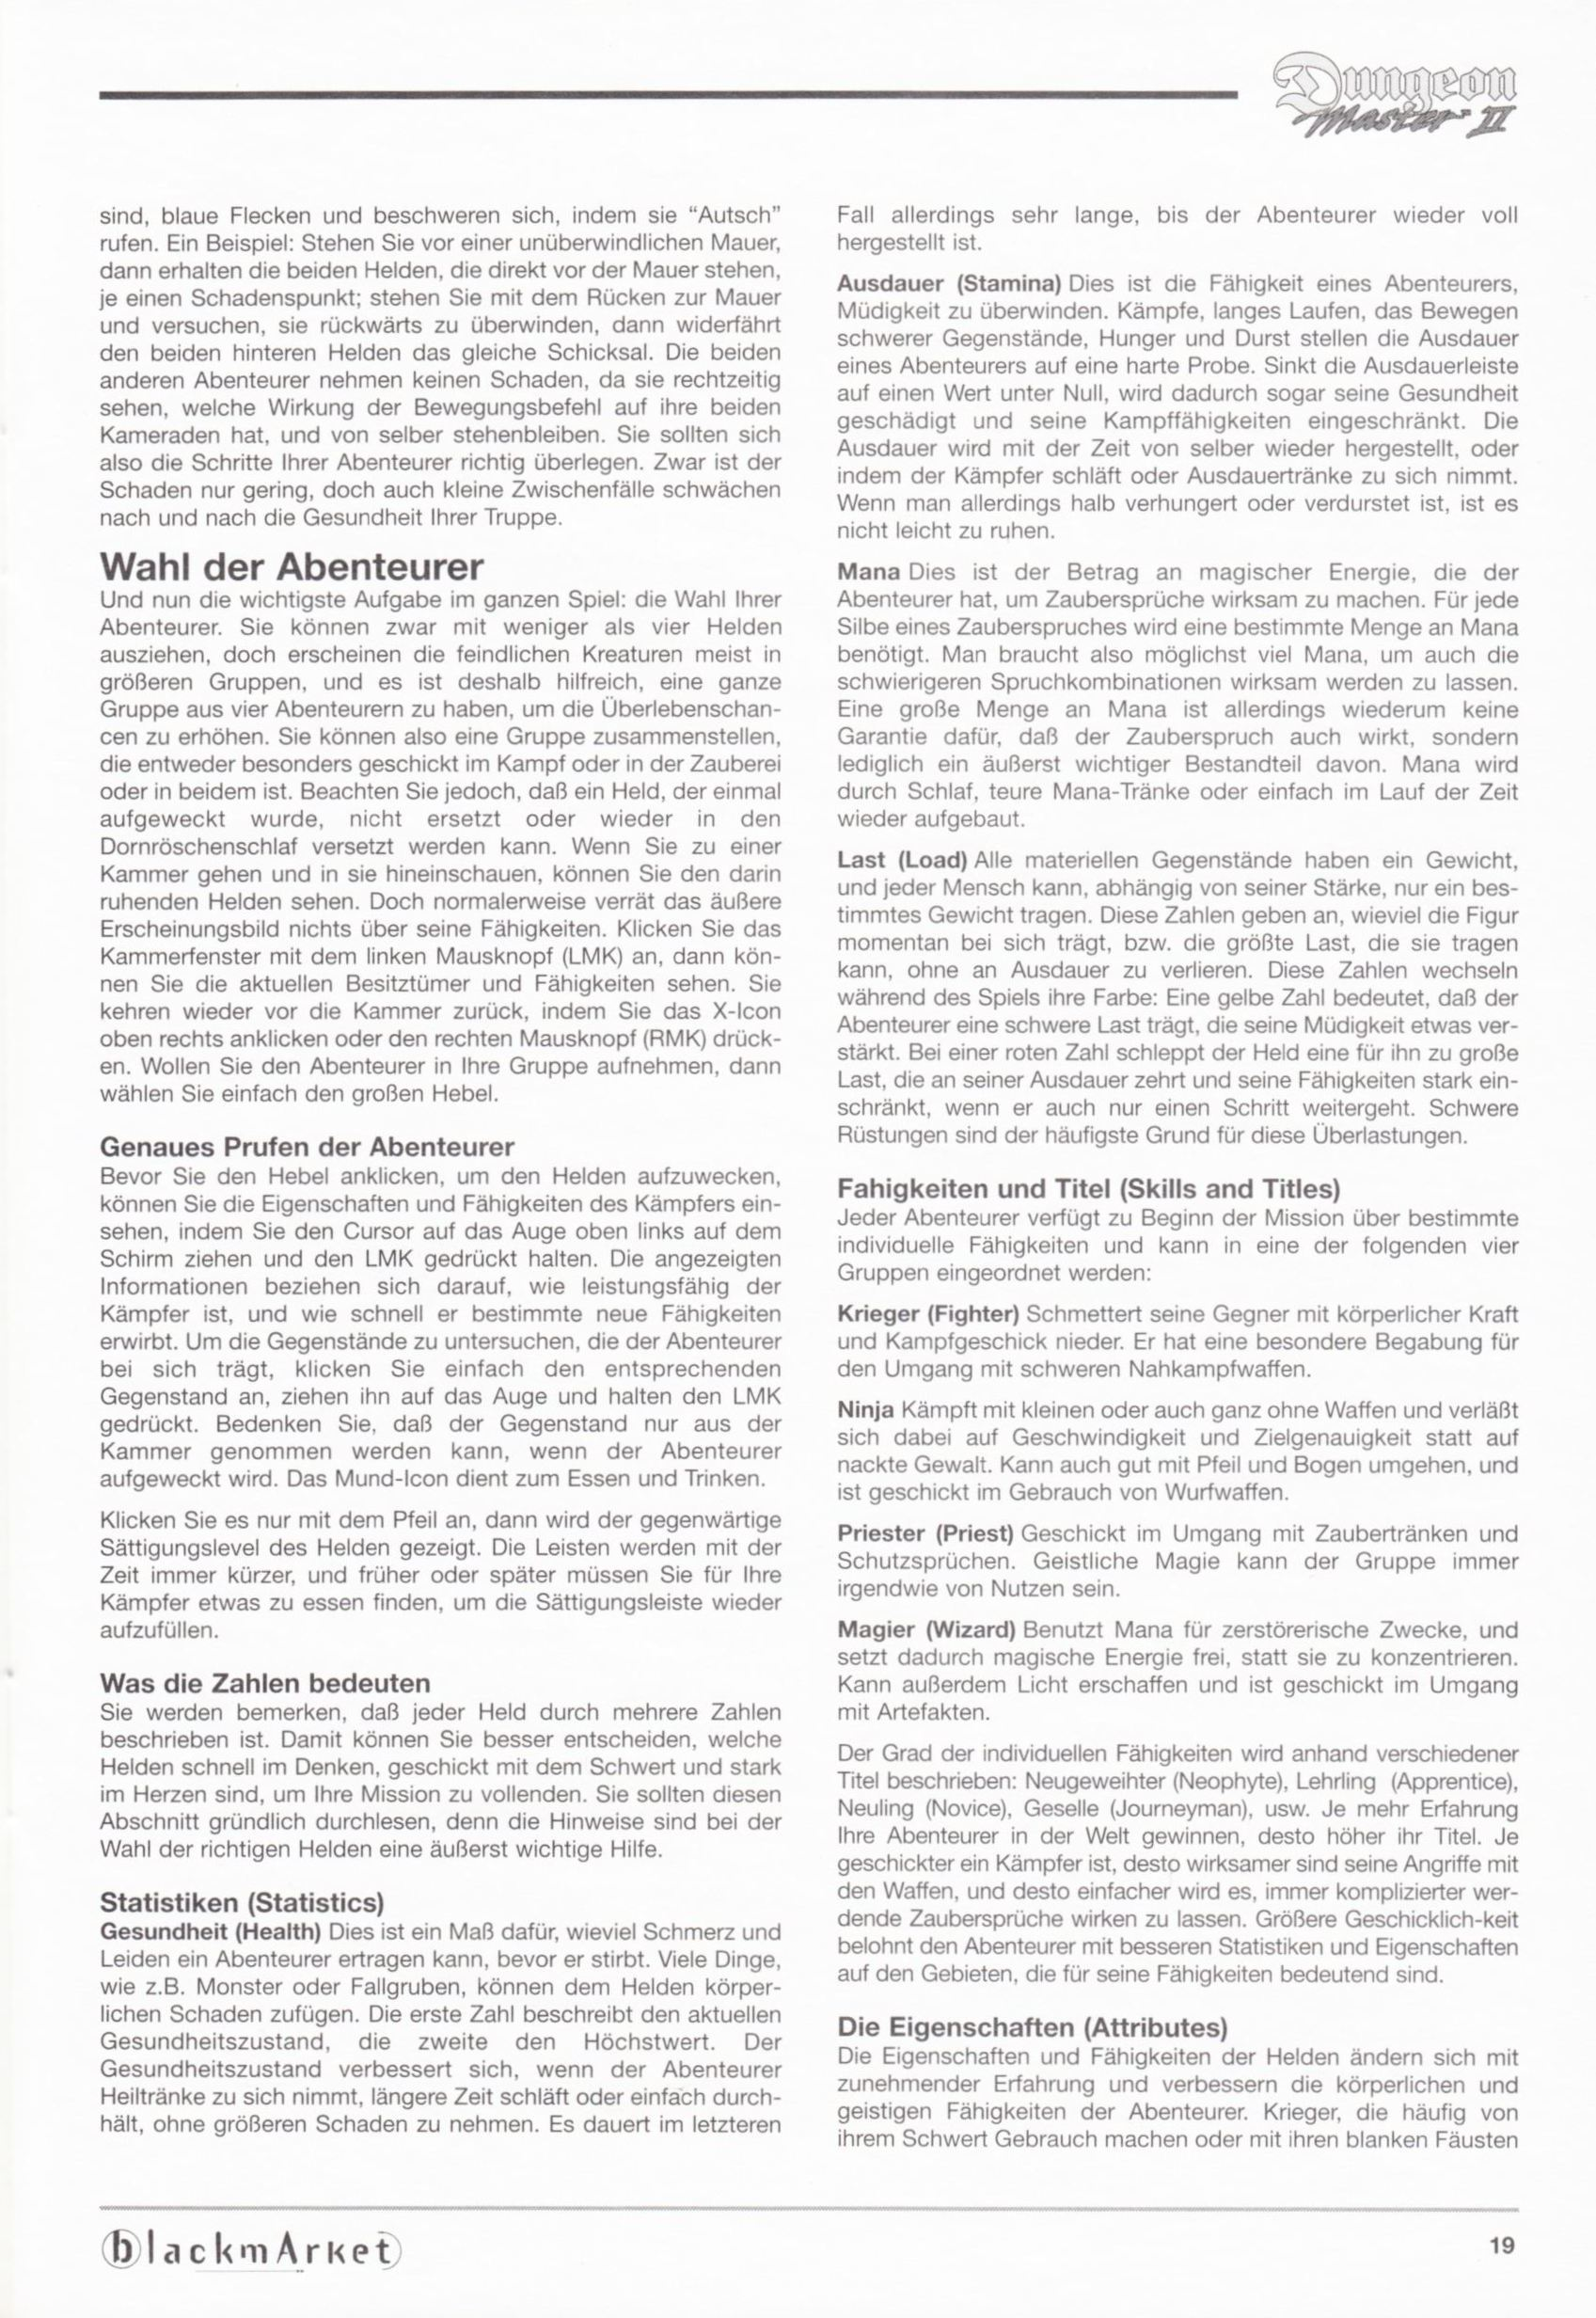 Game - Dungeon Master II - DE - PC - Blackmarket With Manual - Manual - Page 021 - Scan